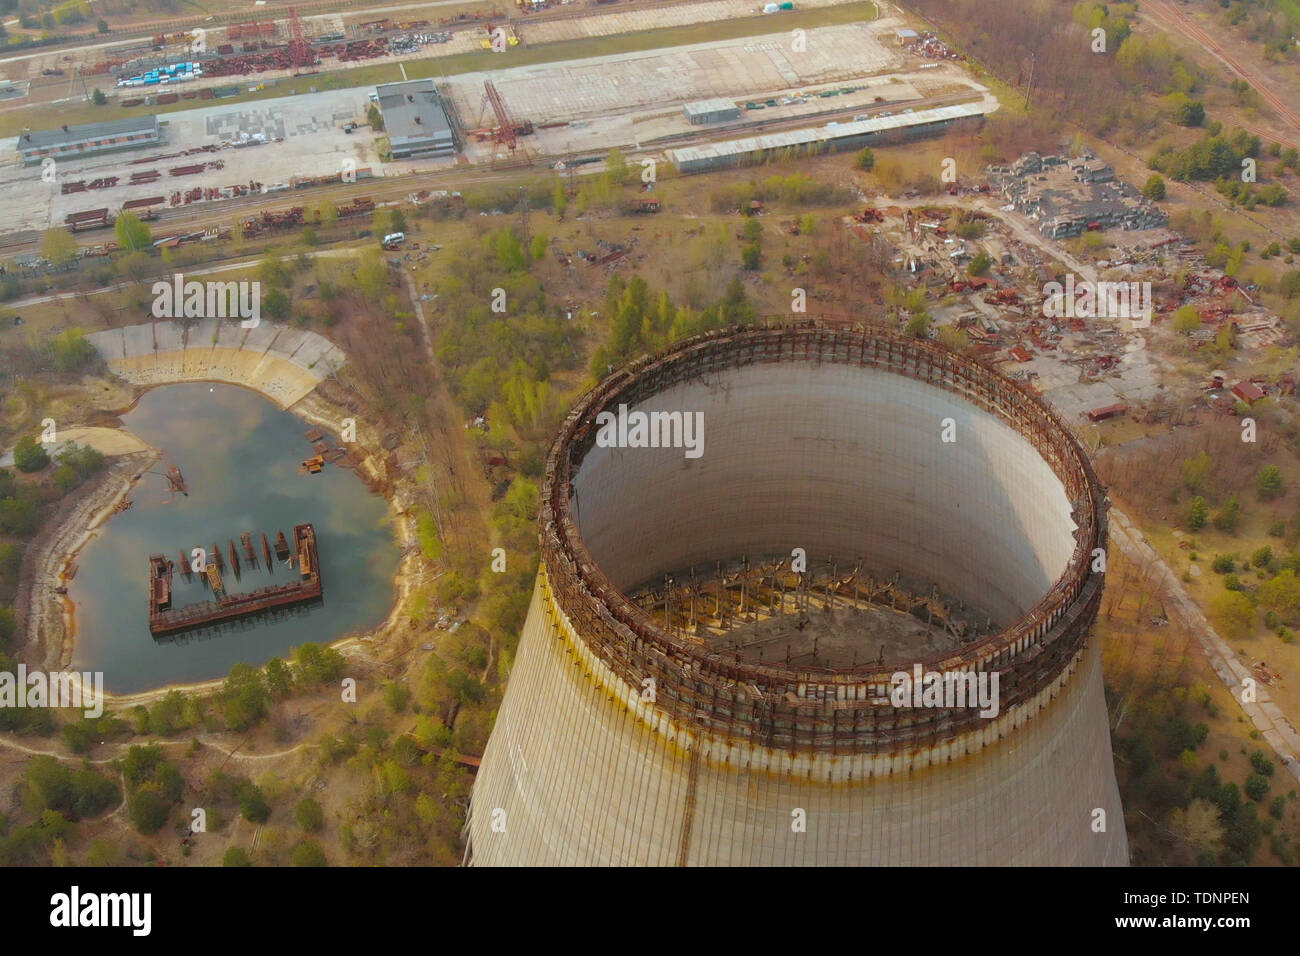 Drone flies over cooling tower near Chernobyl nuclear power plant. Chernobyl nuclear power plant. Cooling tower overlooking the nuclear power plant in - Stock Image